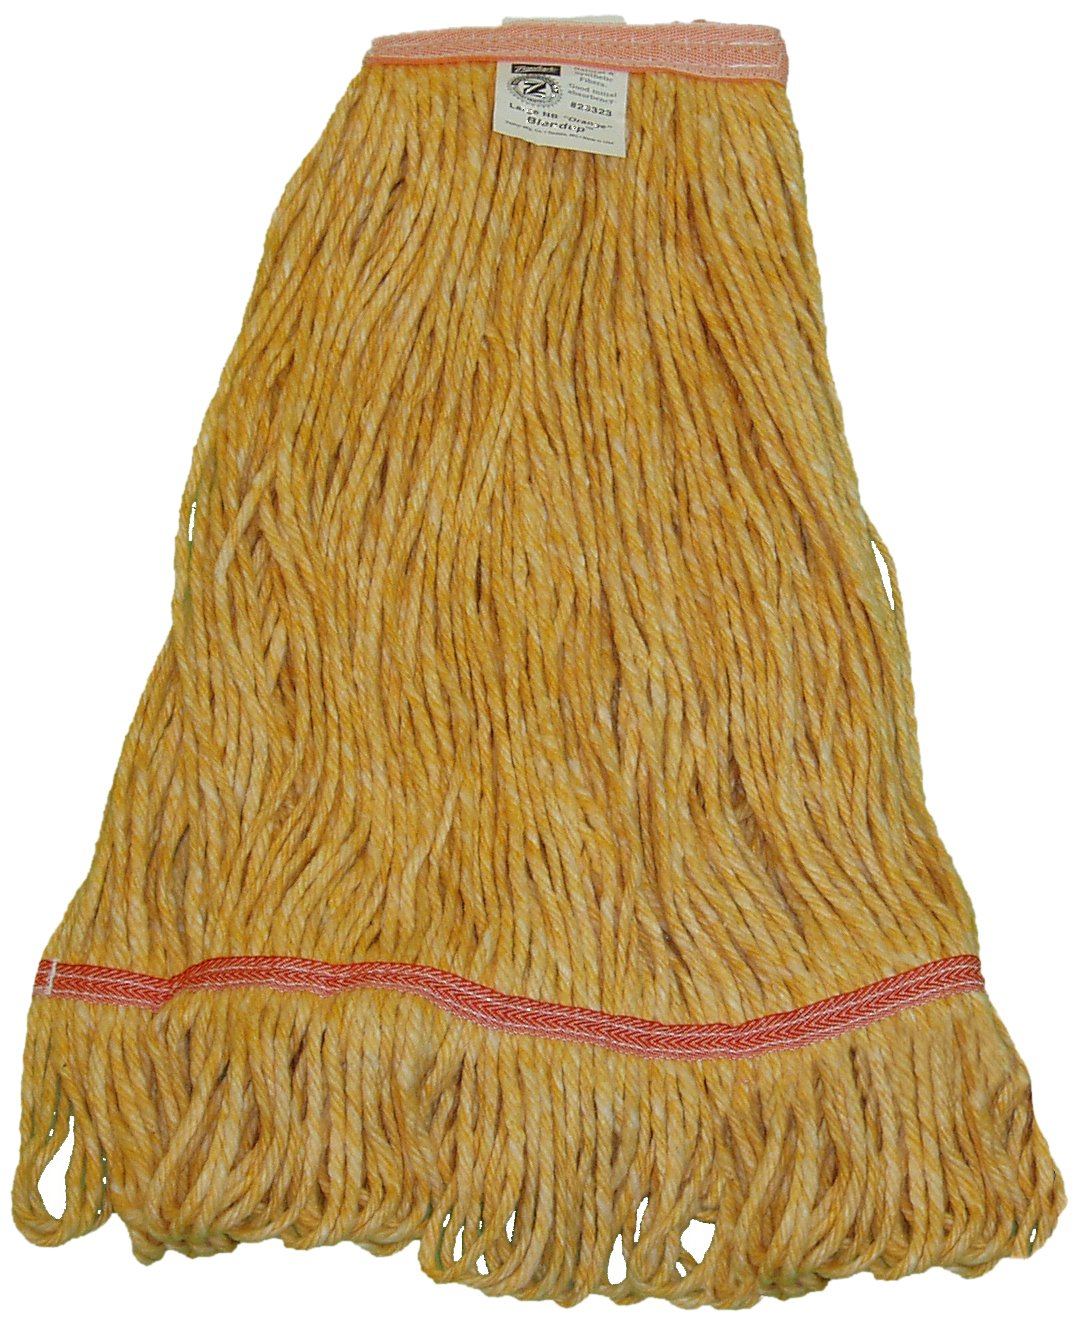 Zephyr 26324 Blendup Orange Blended Natural and Synthetic Fibers X-Large Loop Mop Head with 1-1/4'' Narrow Headbands (Pack of 12)